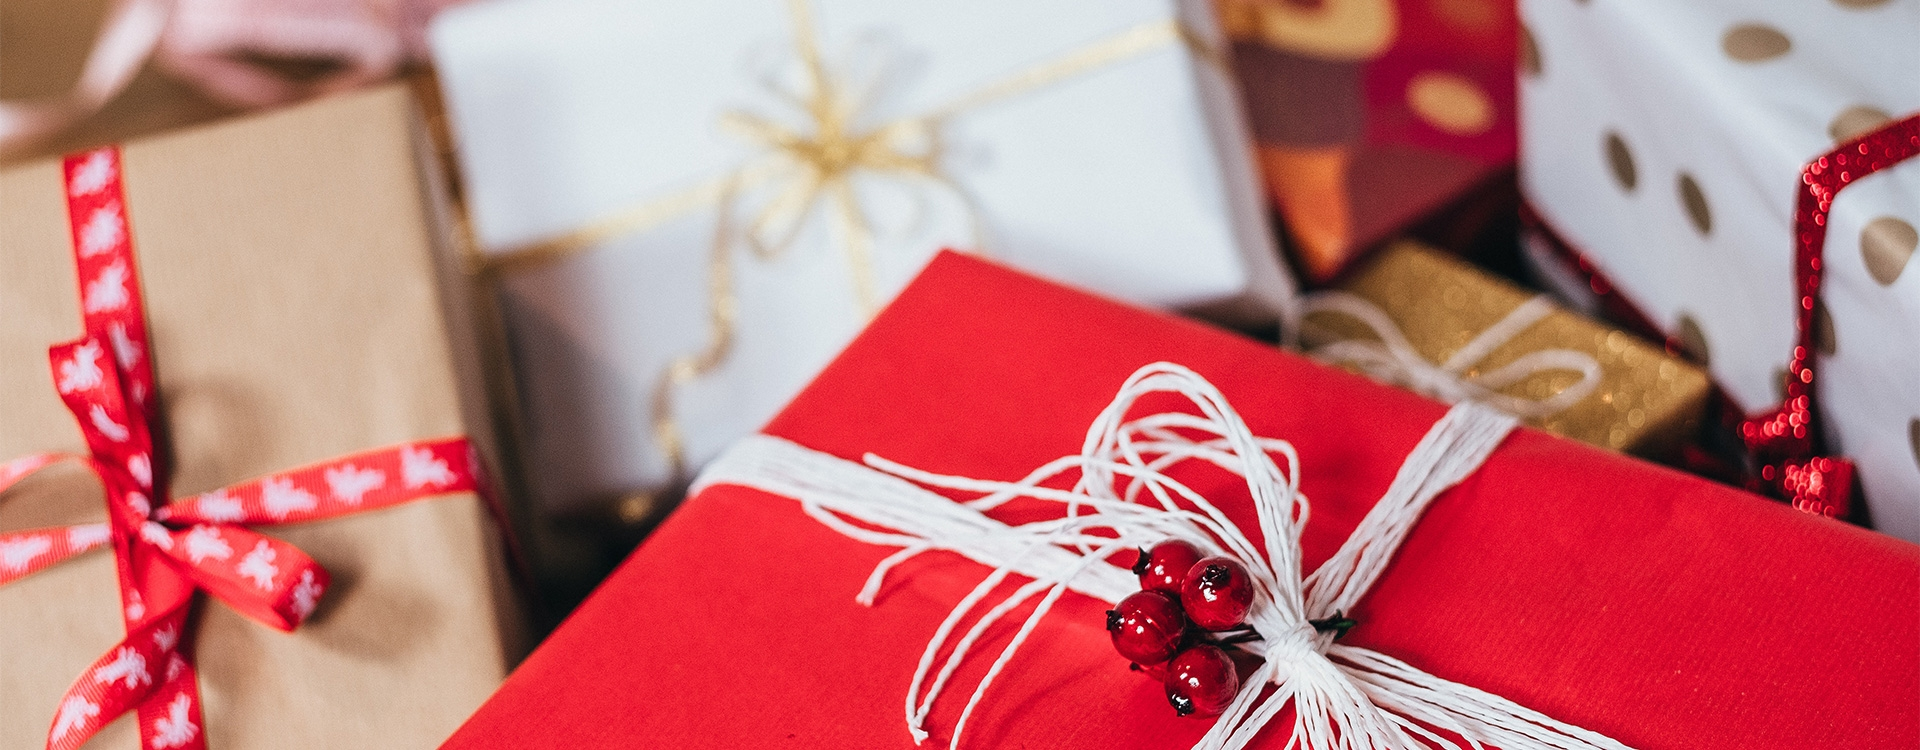 What is your dream present for next Christmas? / A1-A2